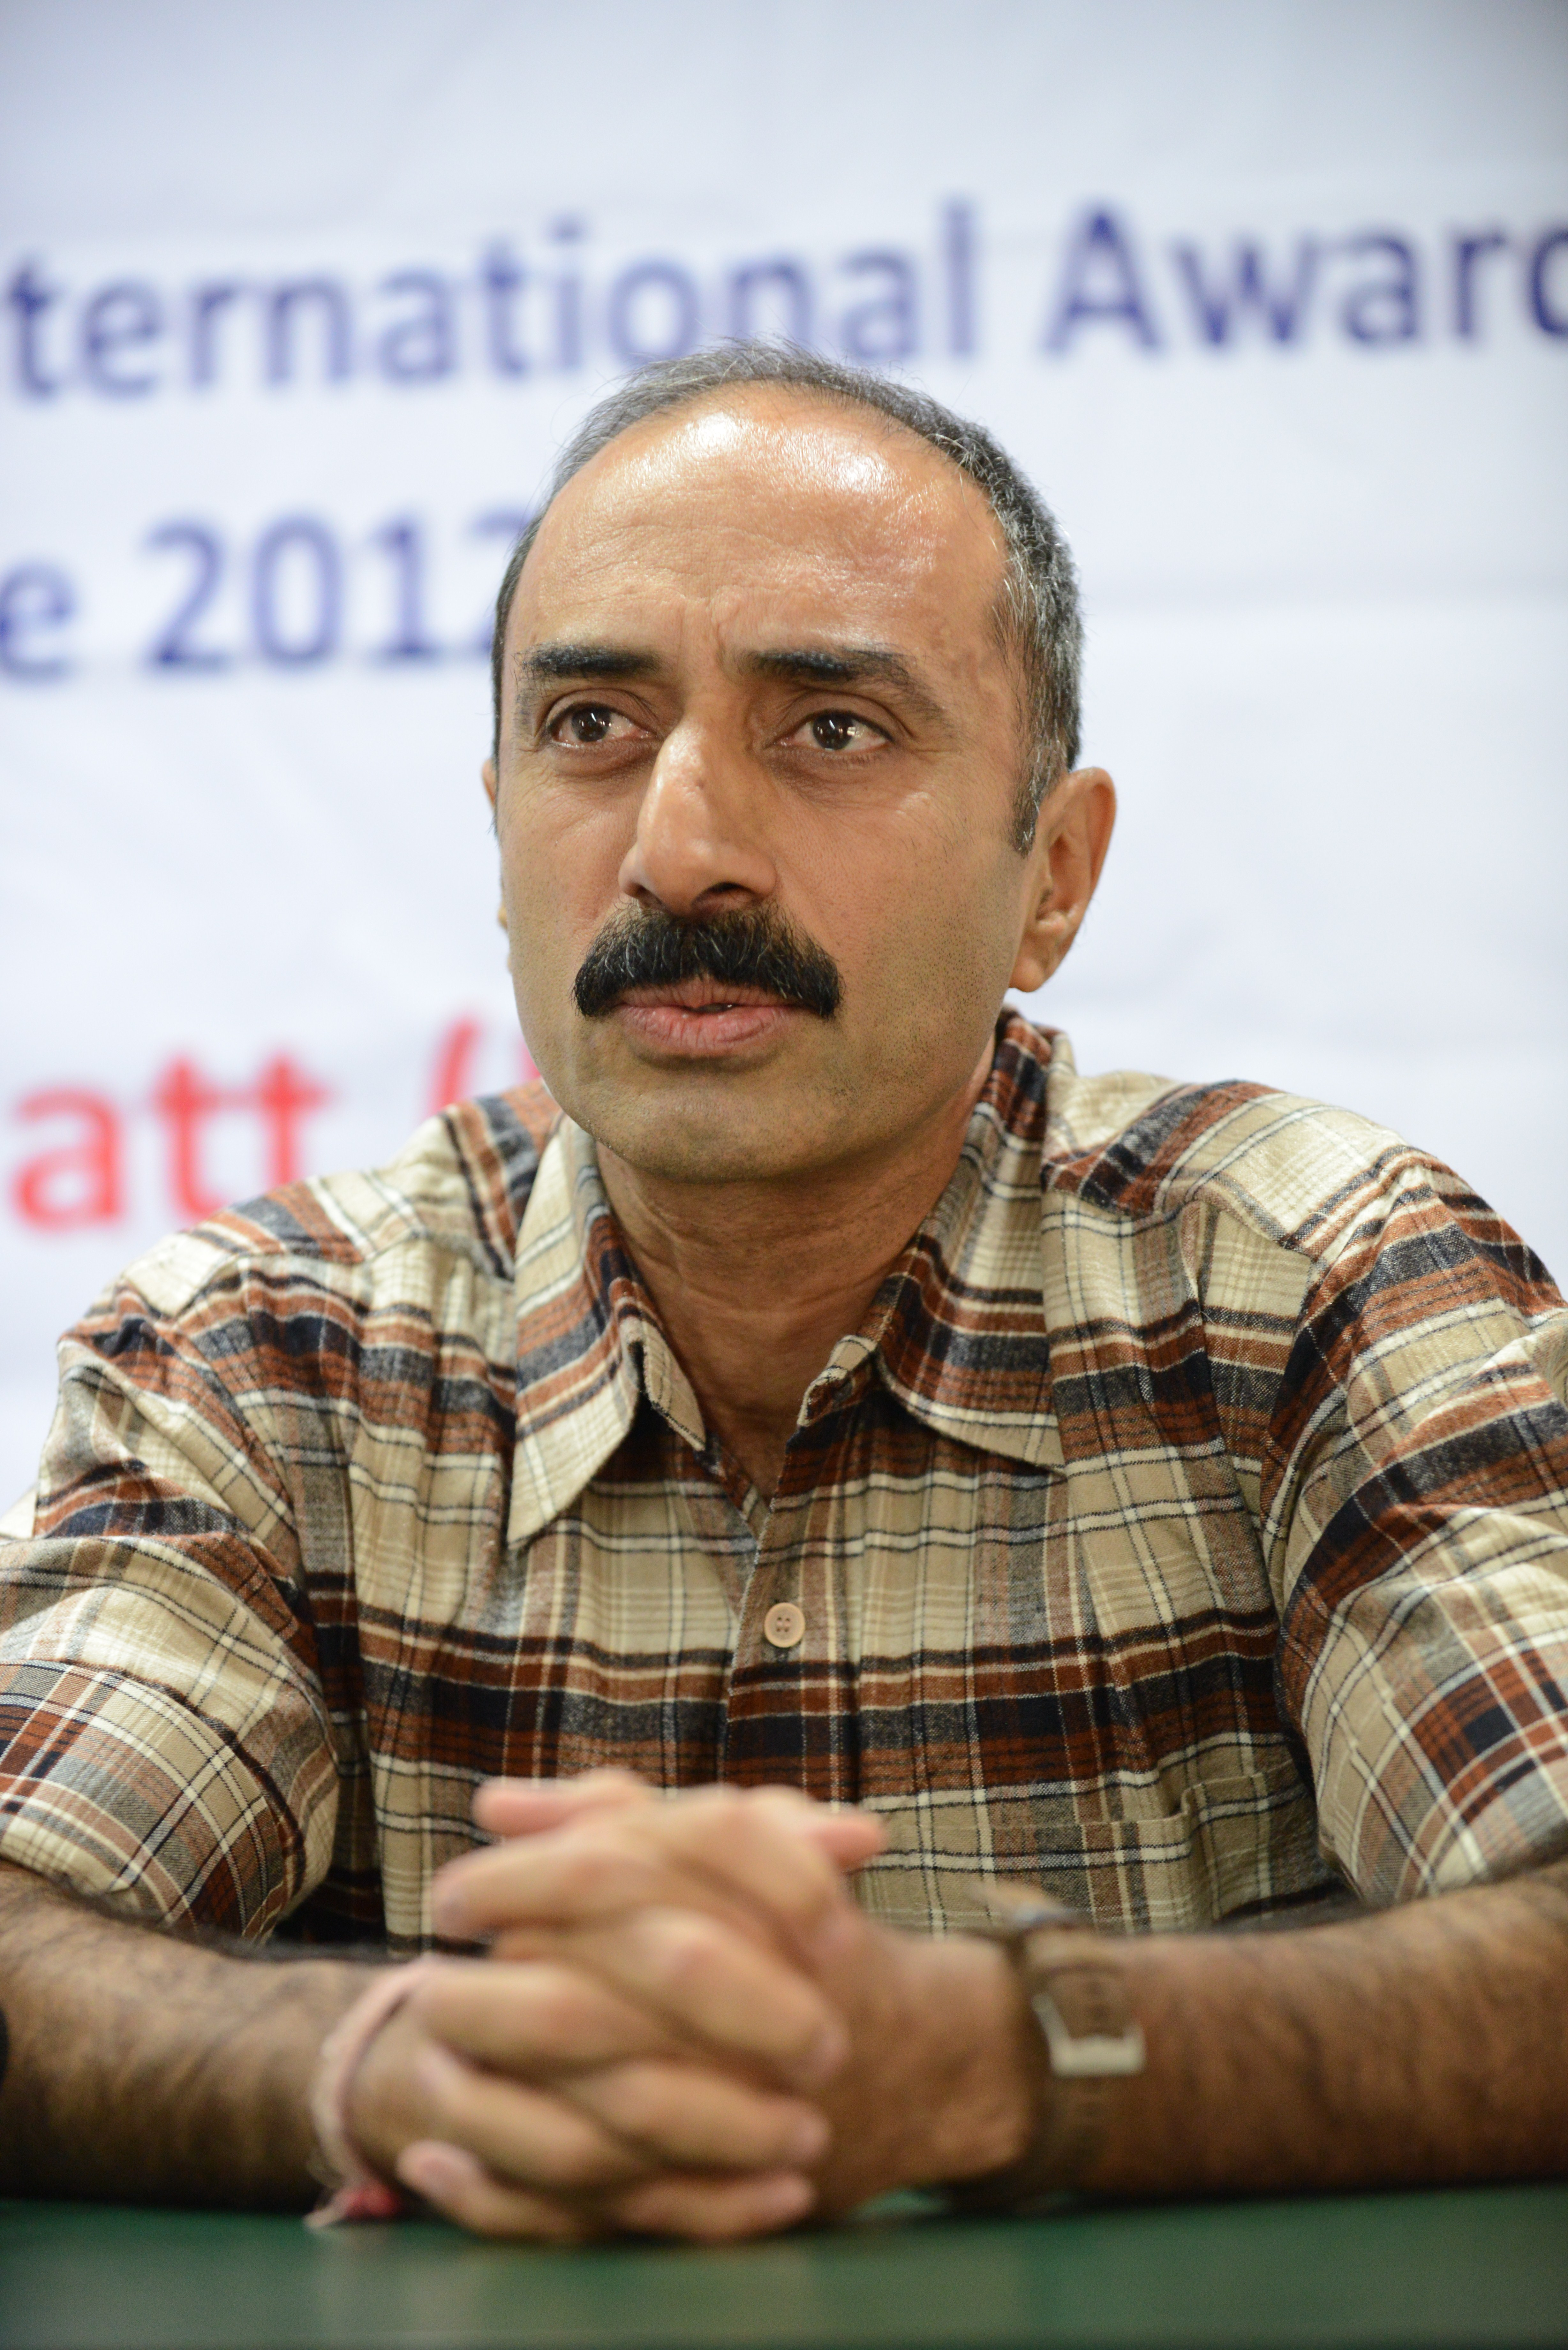 Indian police officer Sanjiv Bhatt gestures after receiving the 5th Mother Teresa Award for Social Justice in Ahmedabad, India, on Dec. 31, 2012